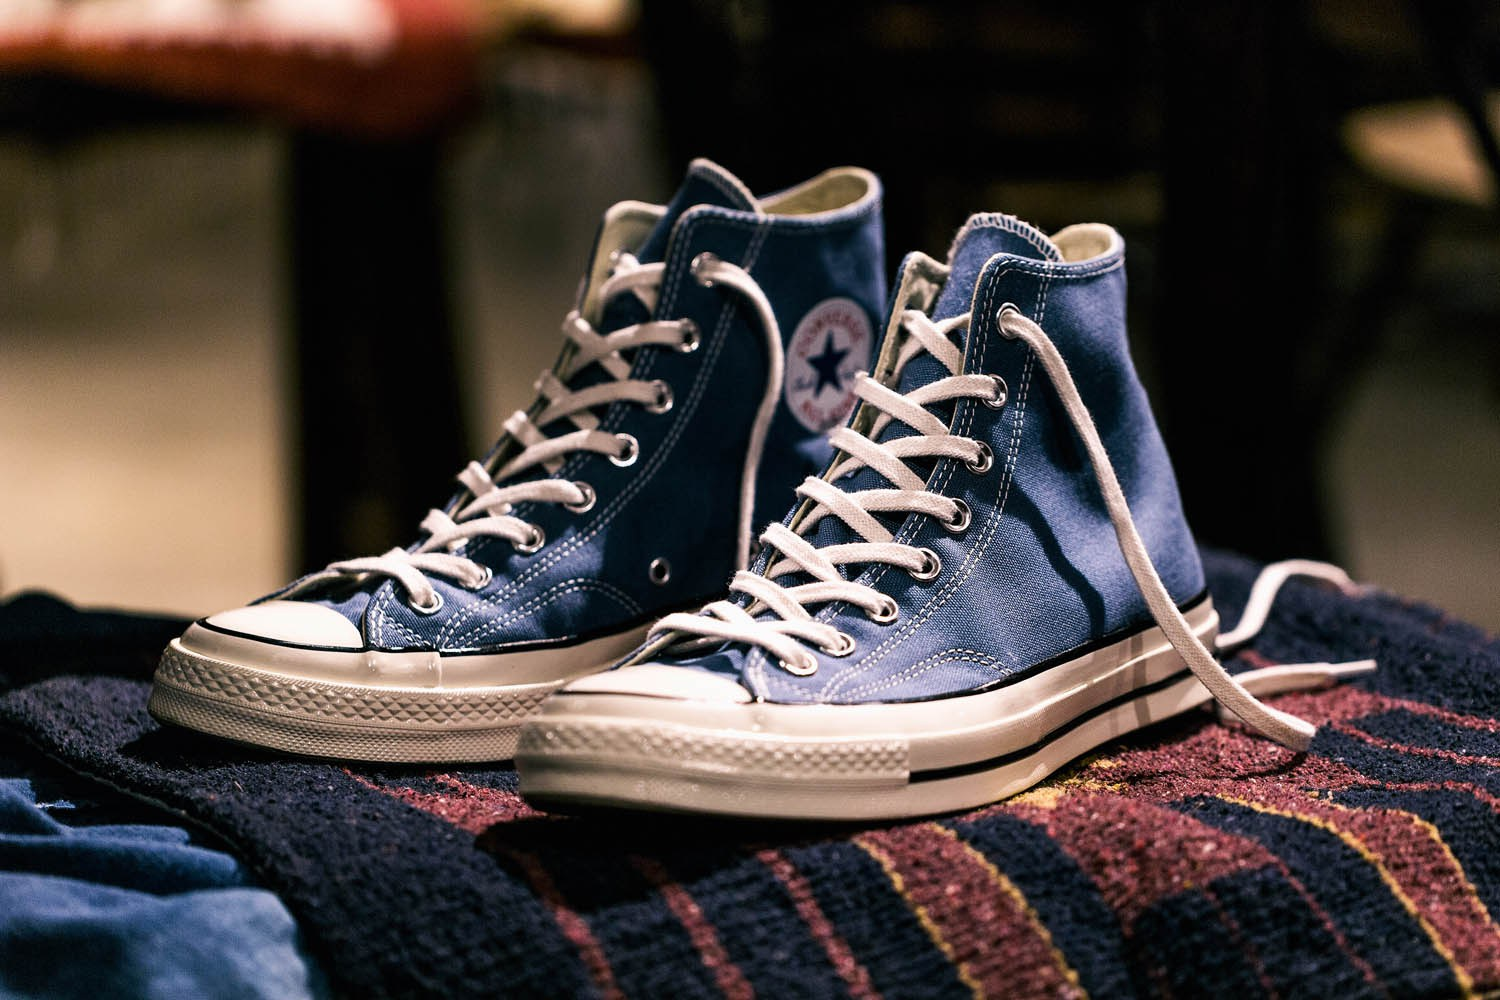 converse-shows-its-colors-with-its-latest-chuck-taylor-all-star-70s-release-5